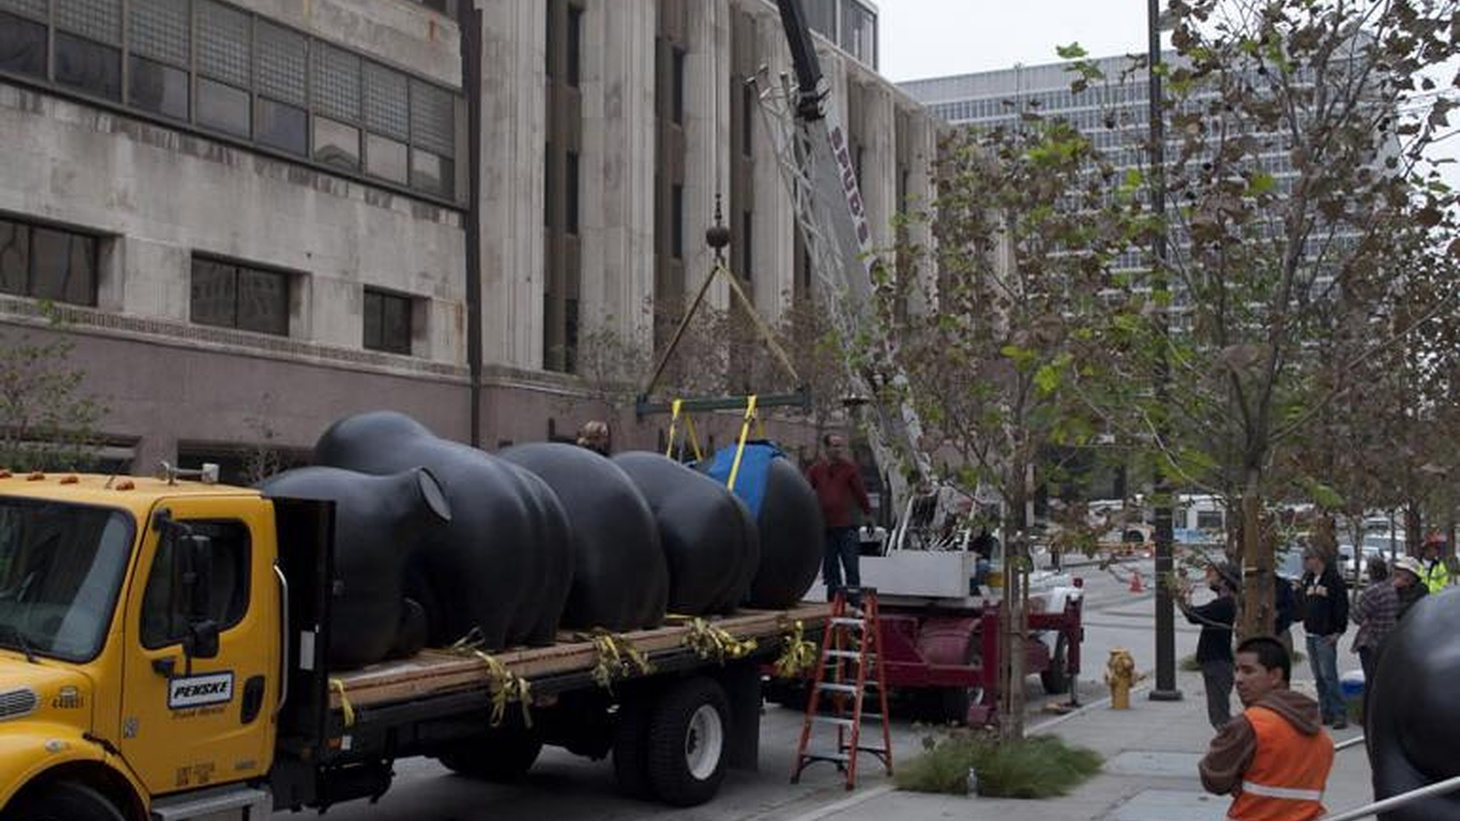 So, what would you think about the LA Police Chief if you heard that he had expressed support for a controversial public artwork installed in front of the new police headquarters? Would you worry? Rest assured, outgoing Police Chief William Bratton simply hates the eight monumental bronze sculptures installed at the new LAPD...